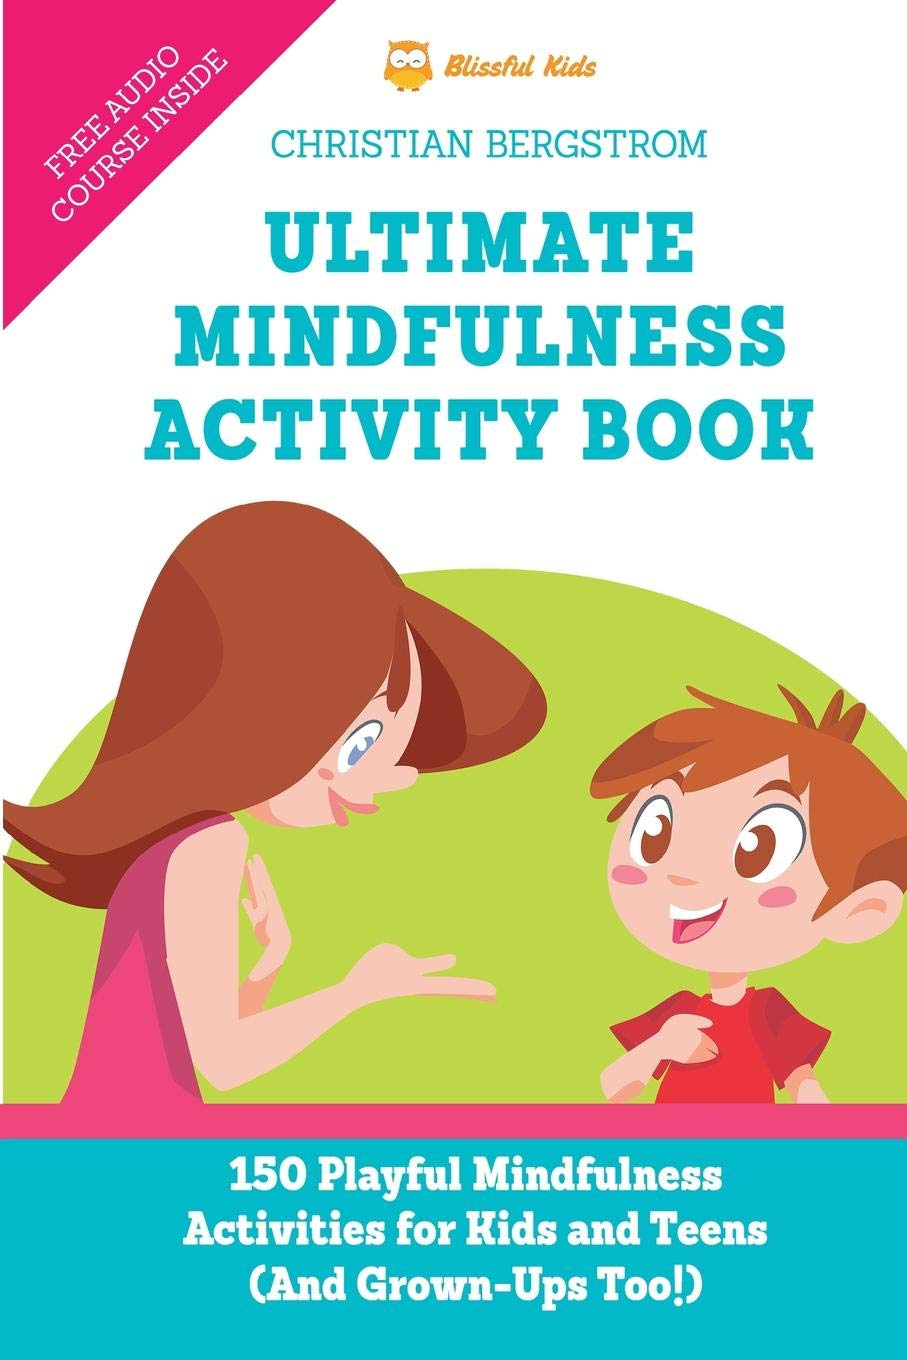 Ultimate Mindfulness Activity Book Activities product image